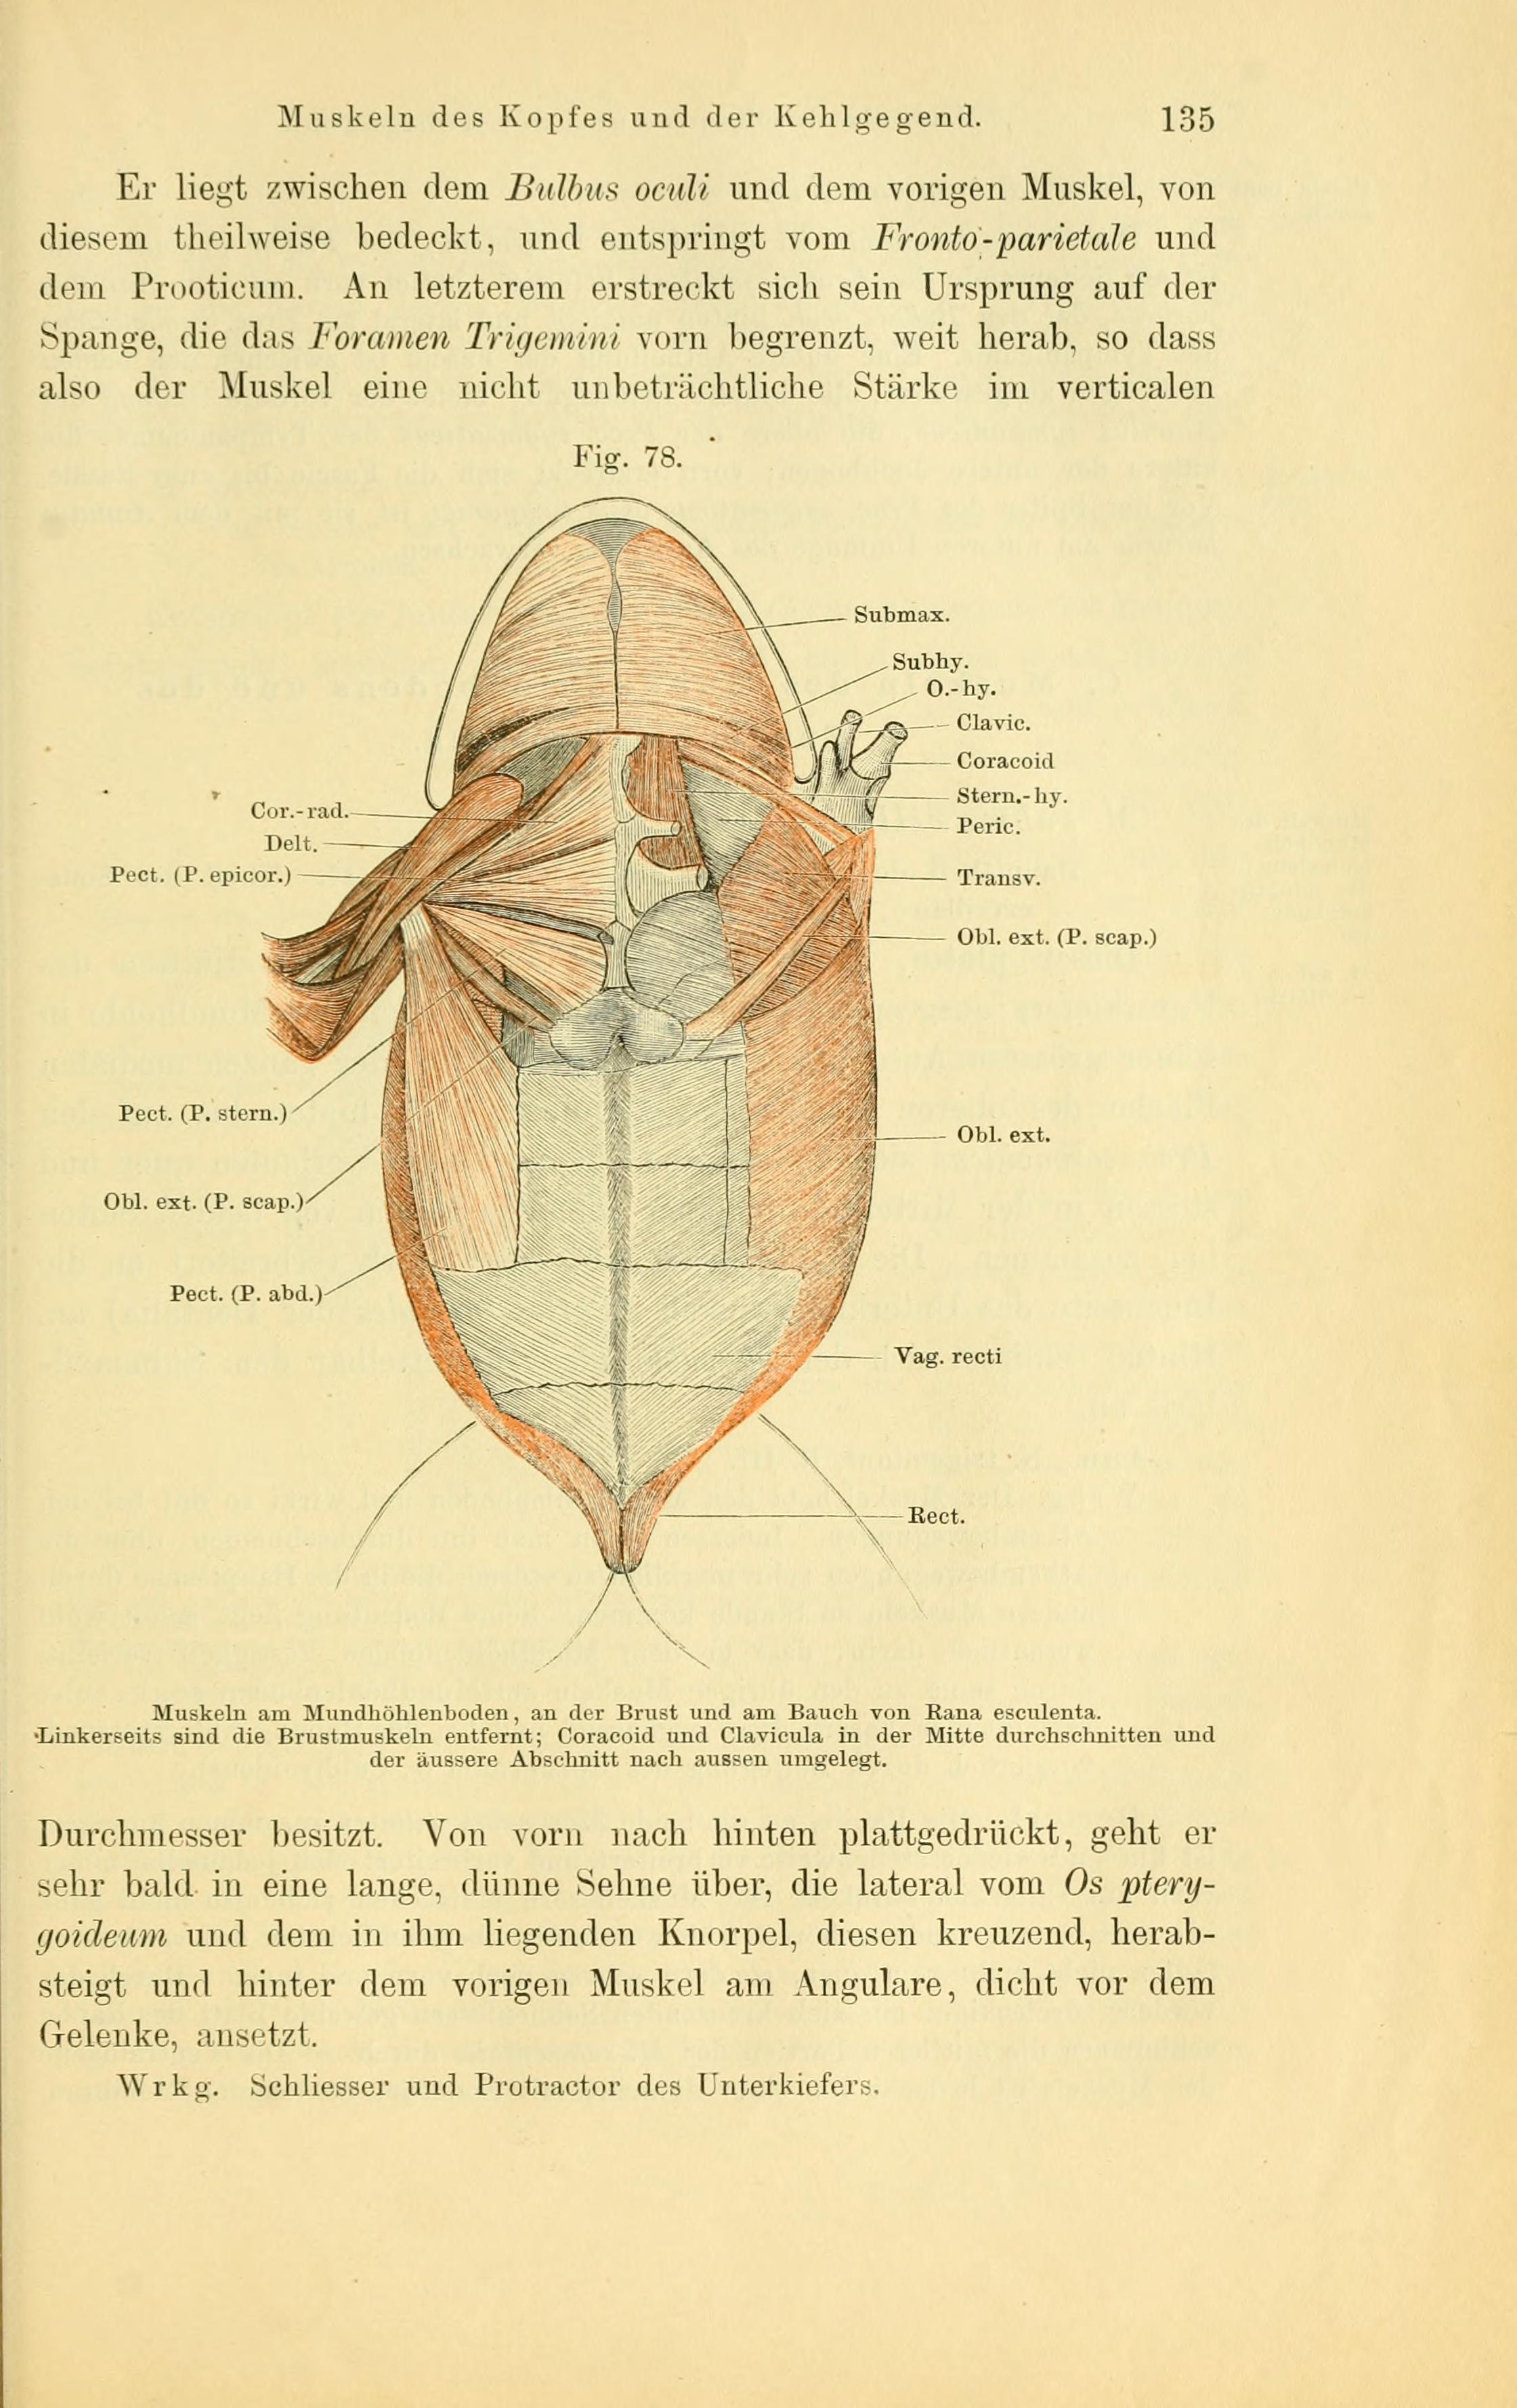 File:Anatomie des Frosches (Page 135, Fig. 78) BHL4404734.jpg ...